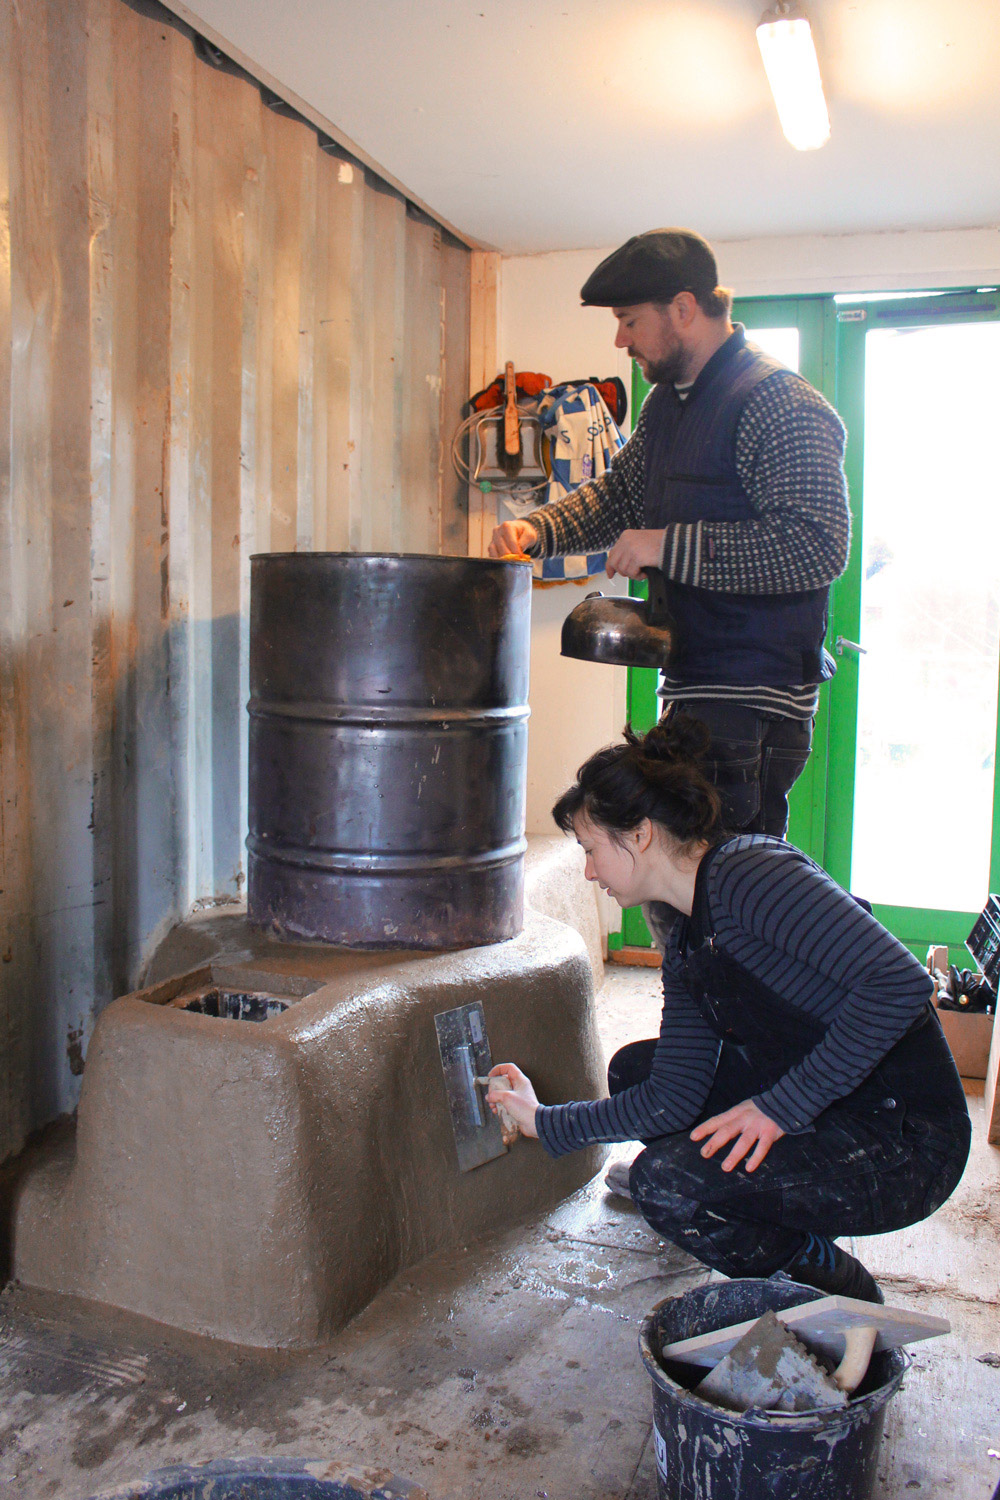 Finishing the rocket stove